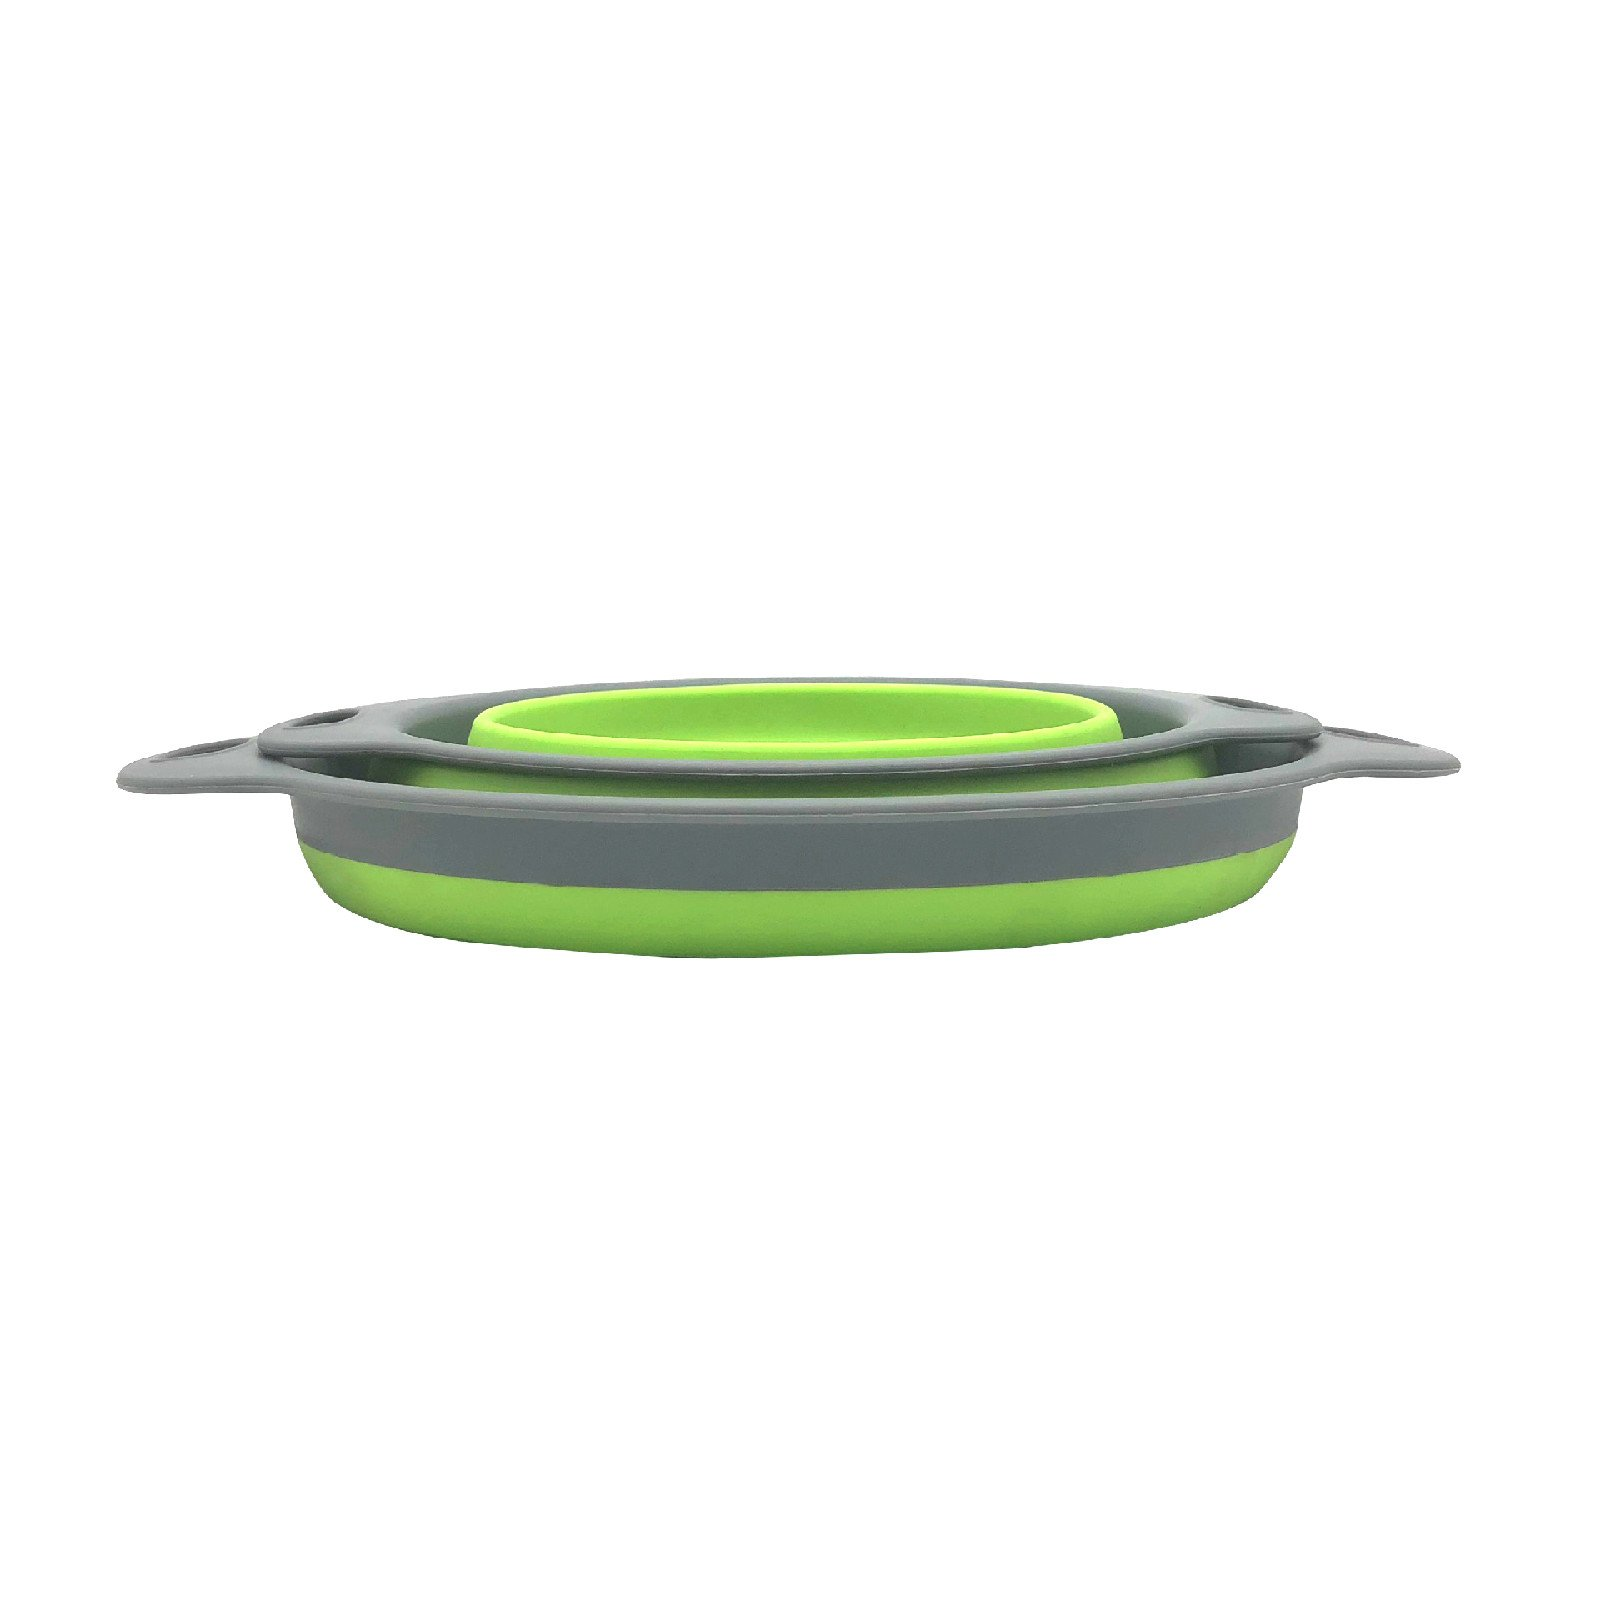 Wesource Collapsible Silicone Colander Strainer Kitchen Fruit Vegetable Basket (Green) by Wesource